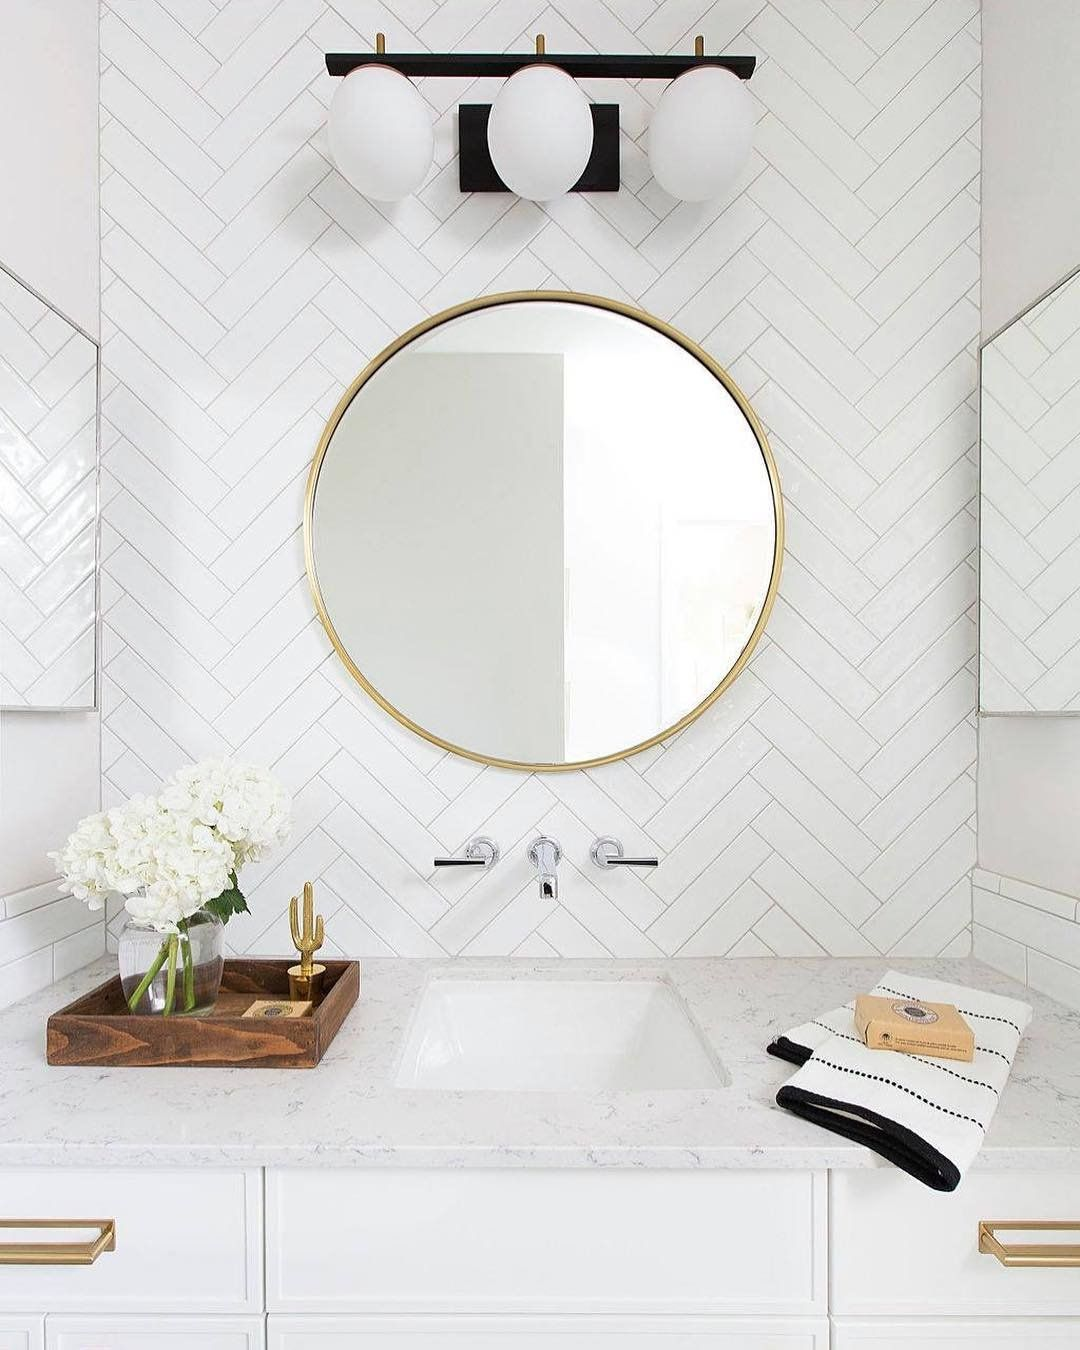 This Bright Bathroom Makes Great Use Of Proportion And Varying Shapes The Round Wall Sconce Light Round Mirror Bathroom Bathrooms Remodel Bathroom Inspiration